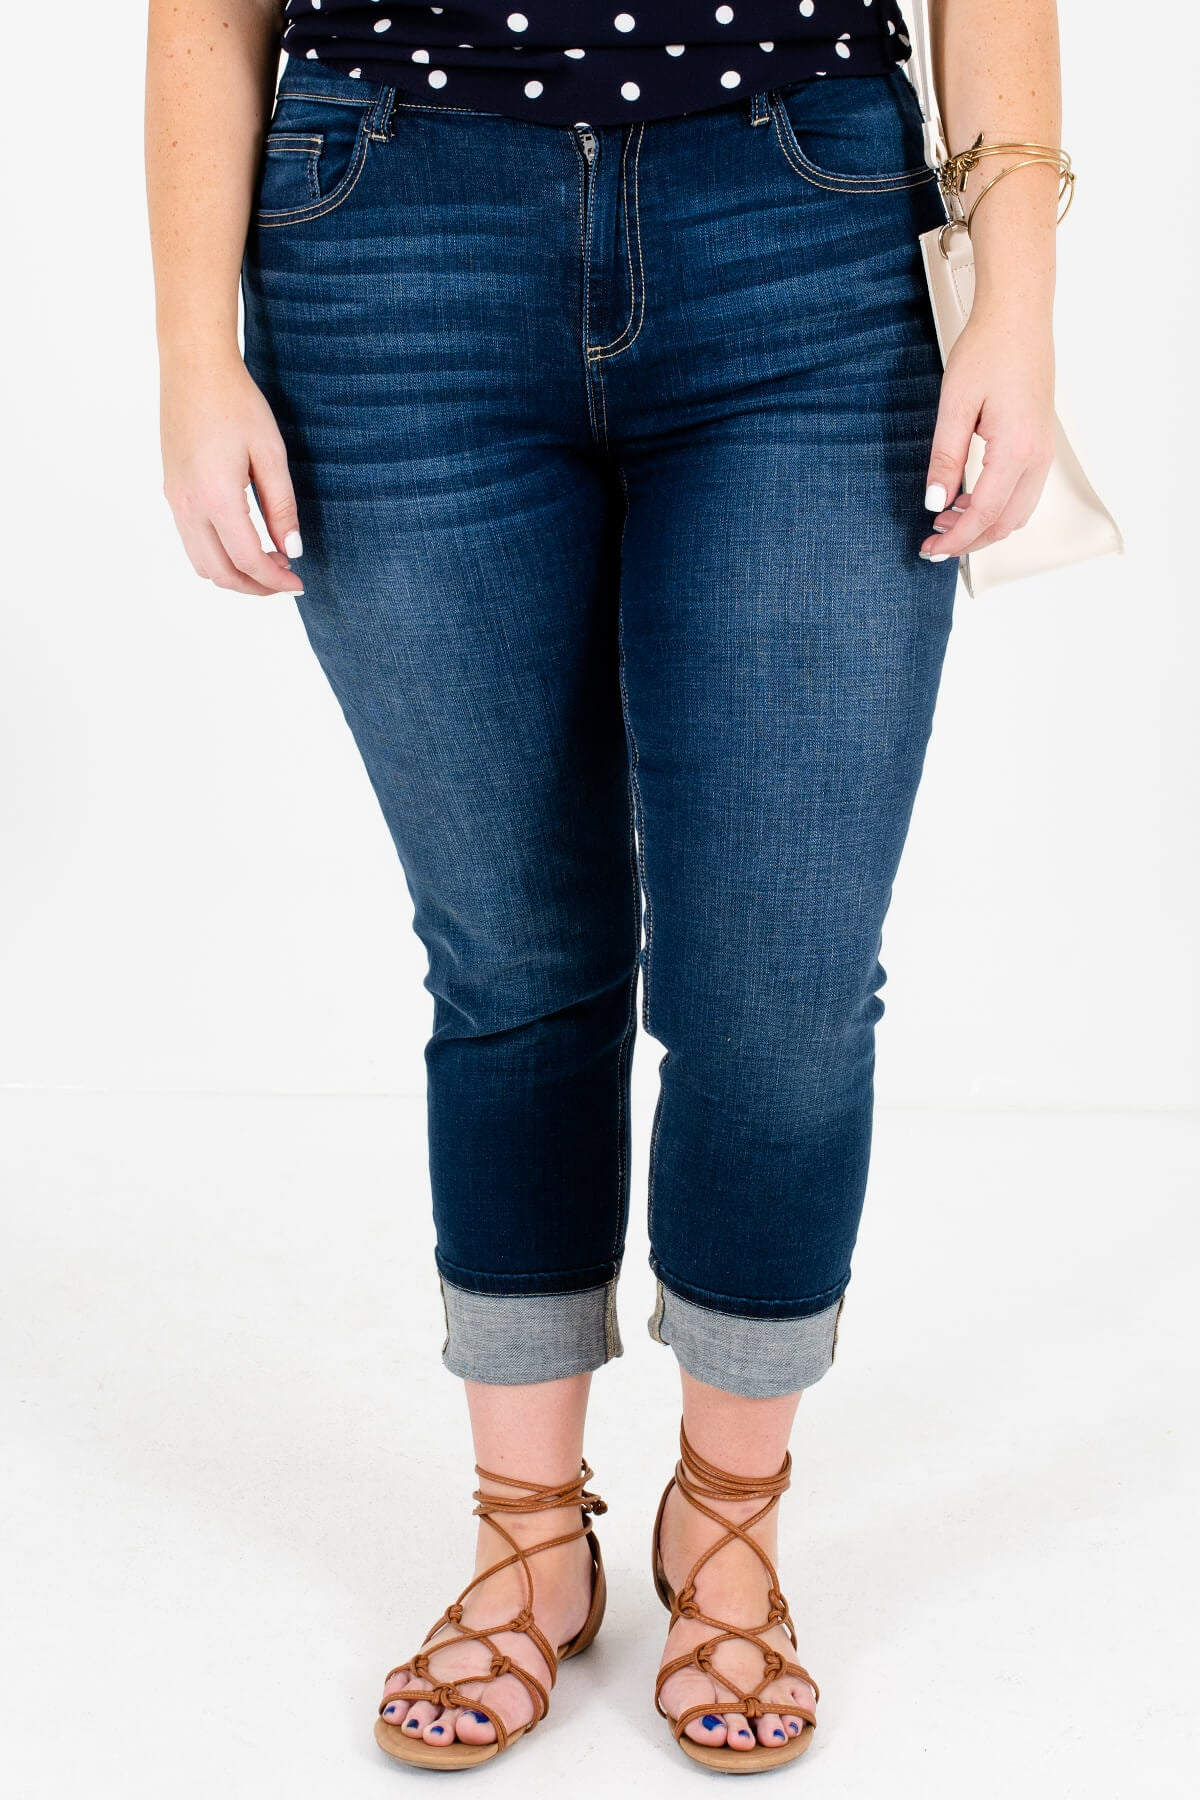 Dark Wash Denim Blue Skinny Fit Boutique Jeans for Women